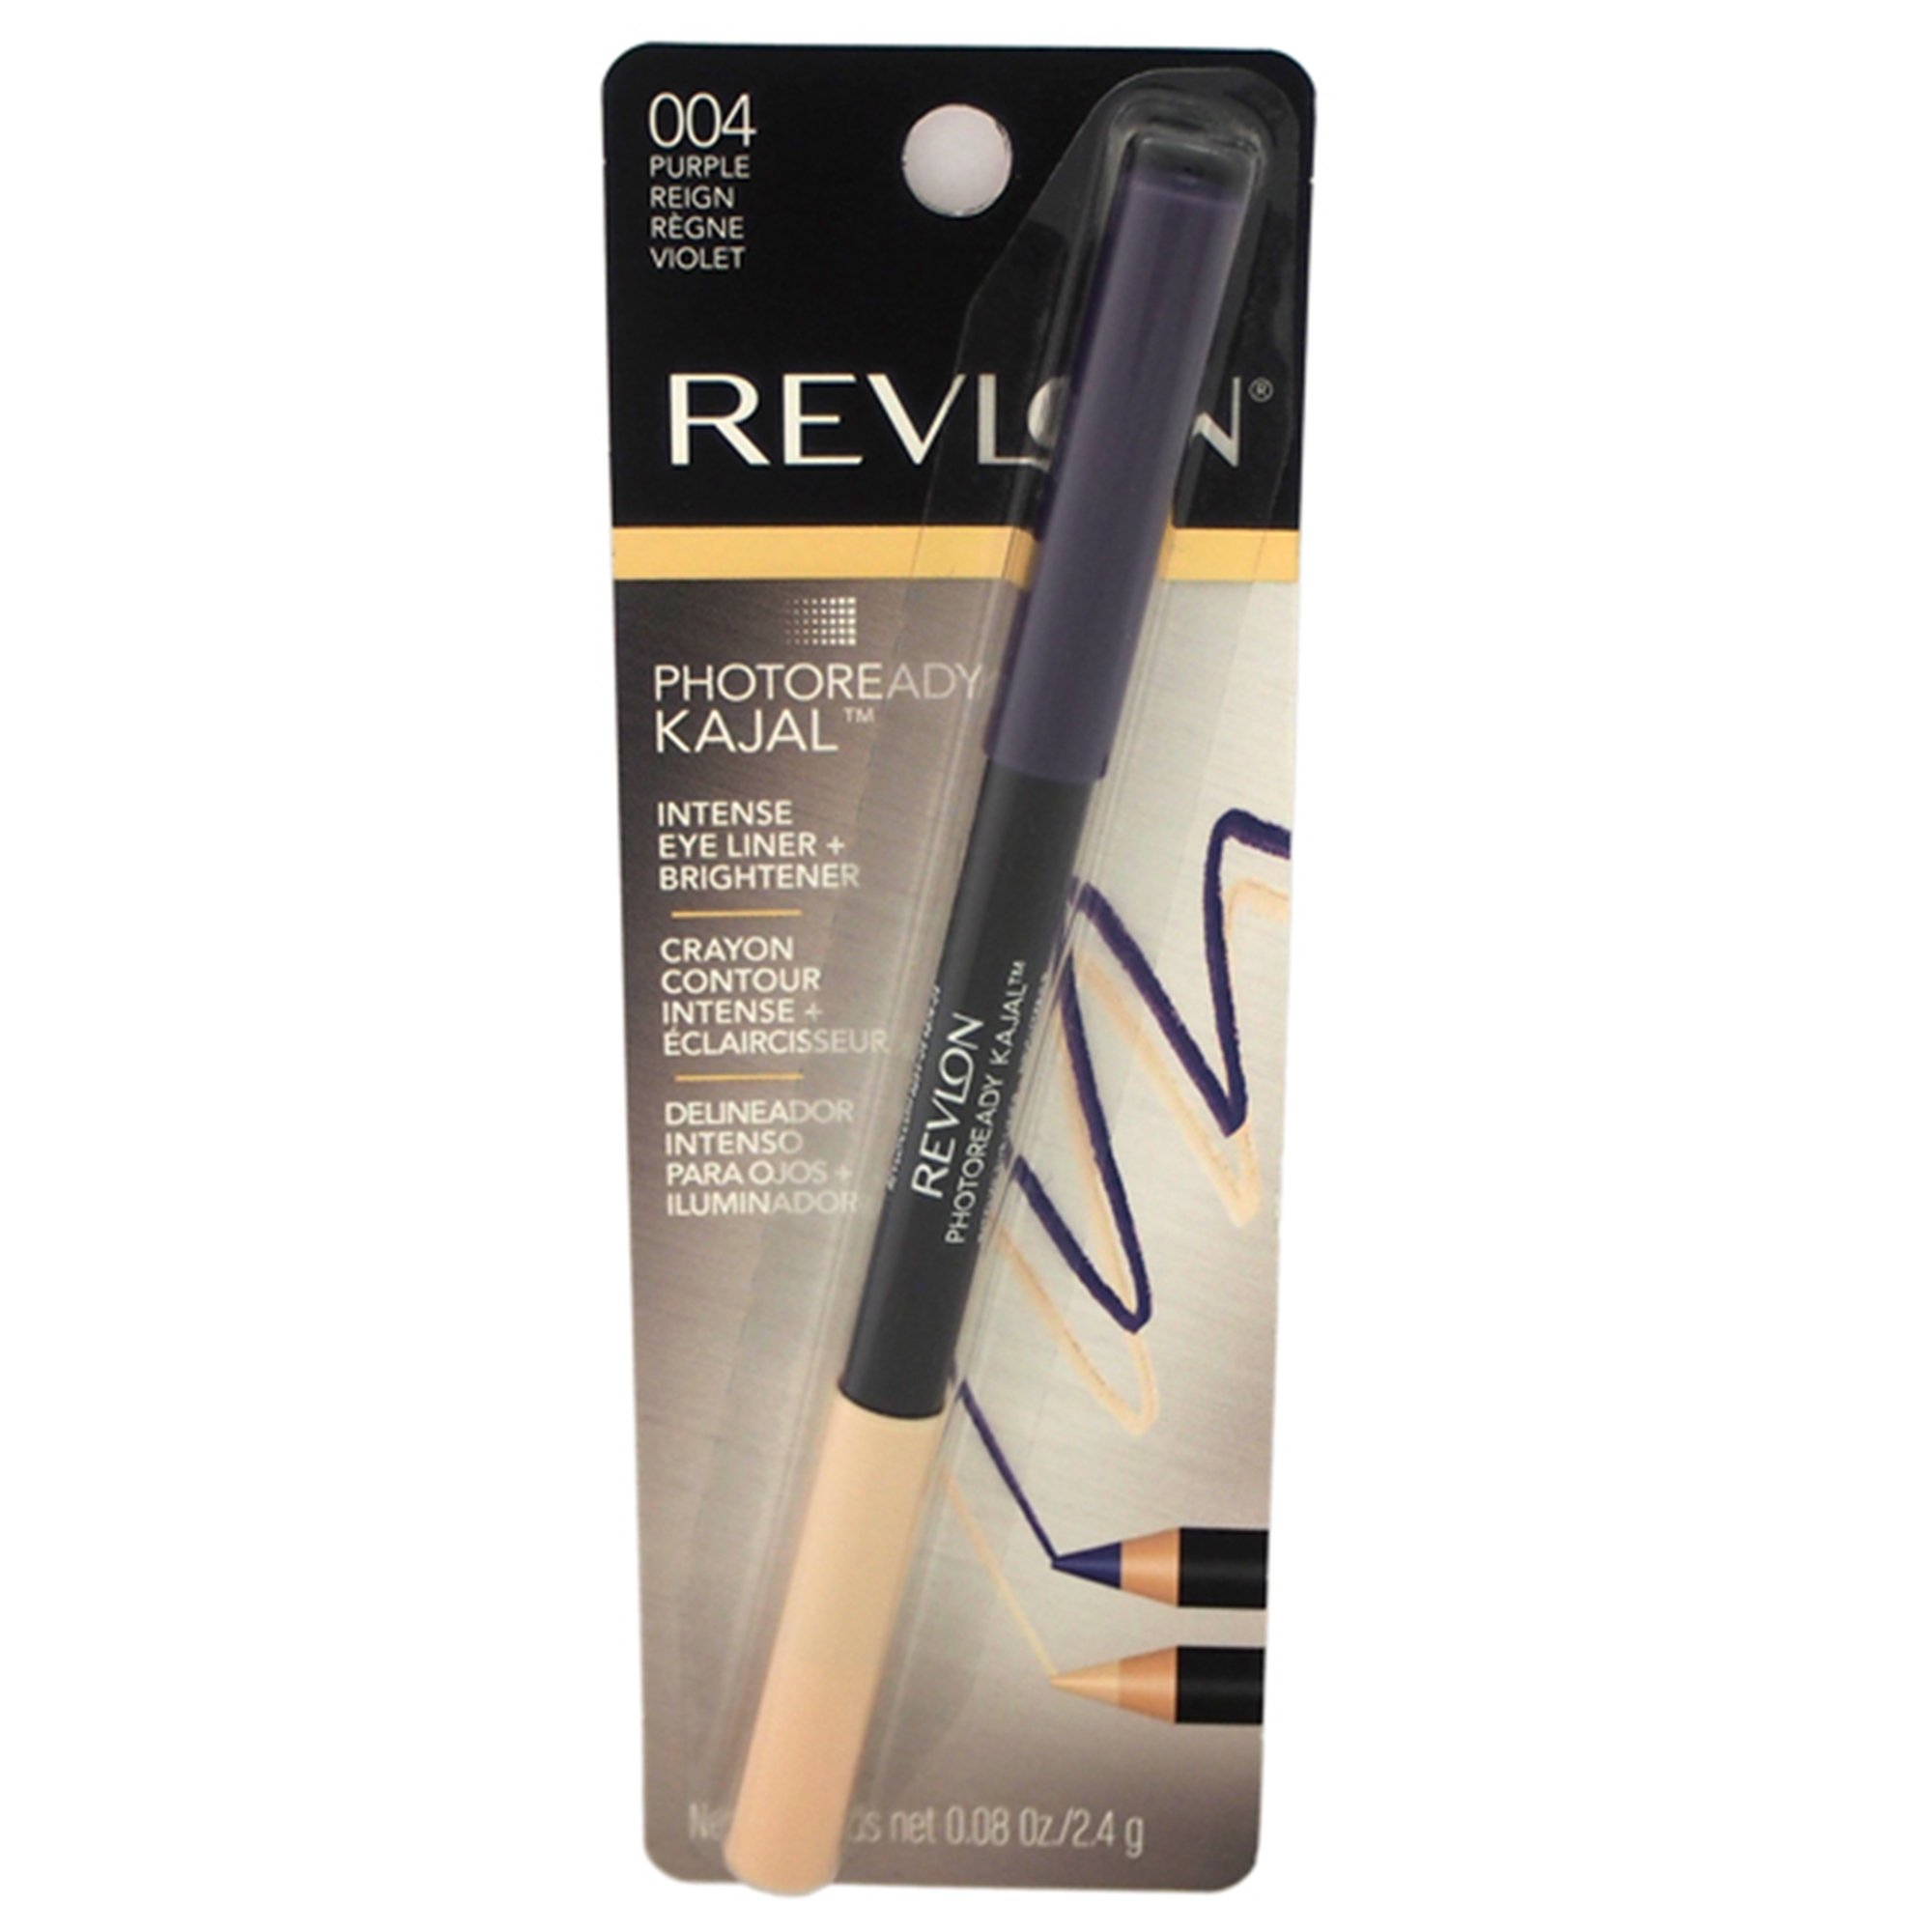 Revlon Photo Ready Kajal Intense Eye Liner & Brightener - Purple Reign - 0.08 oz